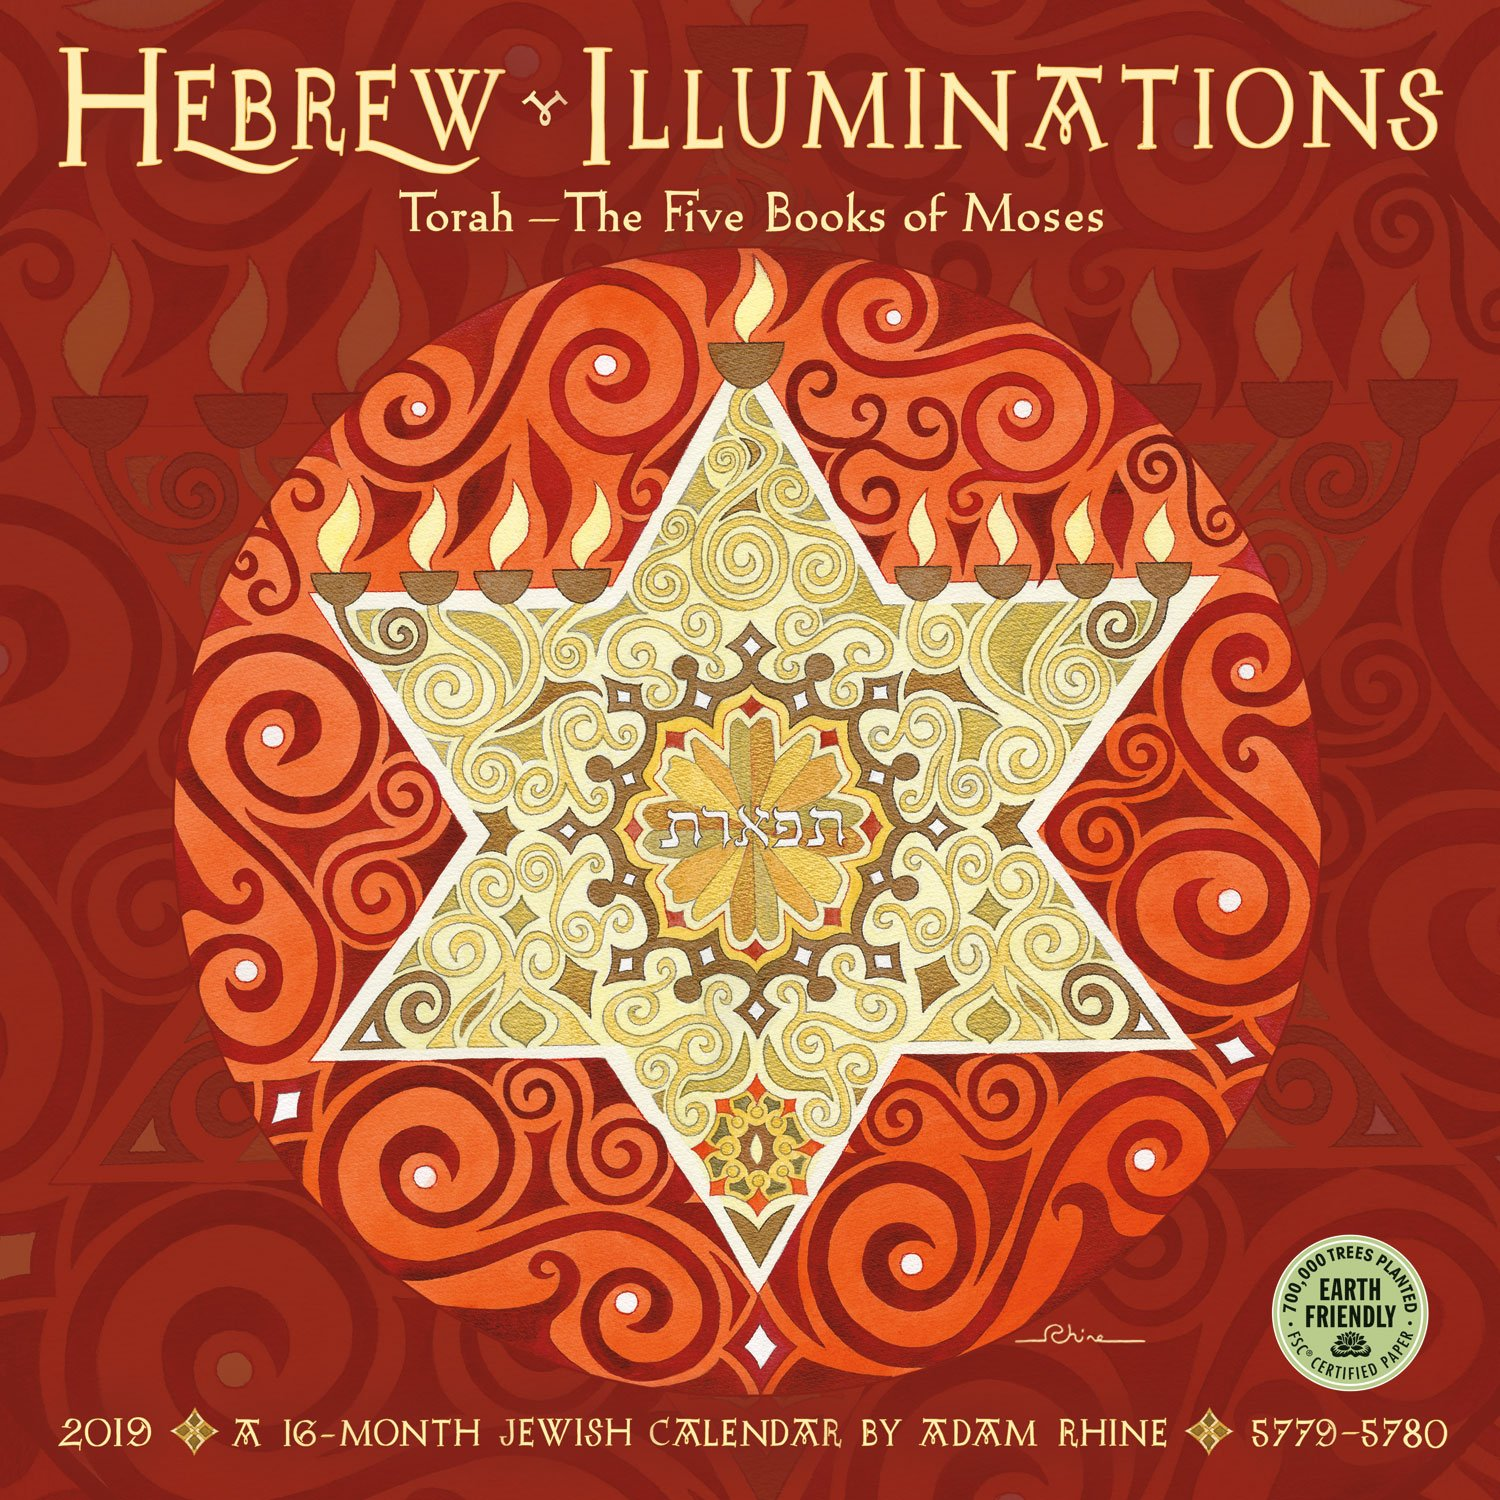 hebrew illuminations 2019 wall calendar a 16 month jewish calendar by adam rhine